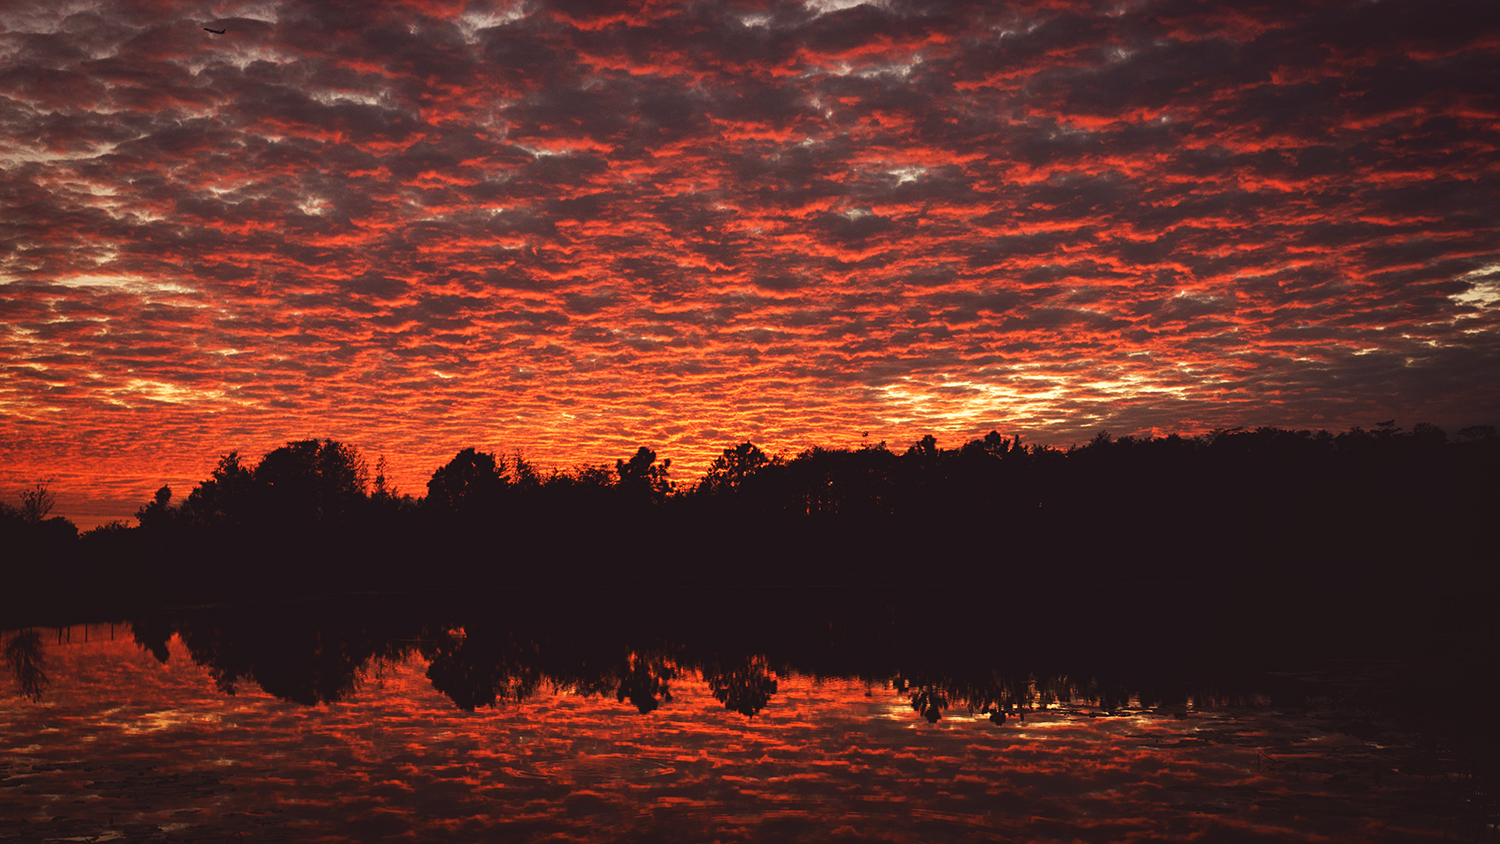 Sunset with dramatic clouds reflecting in lake